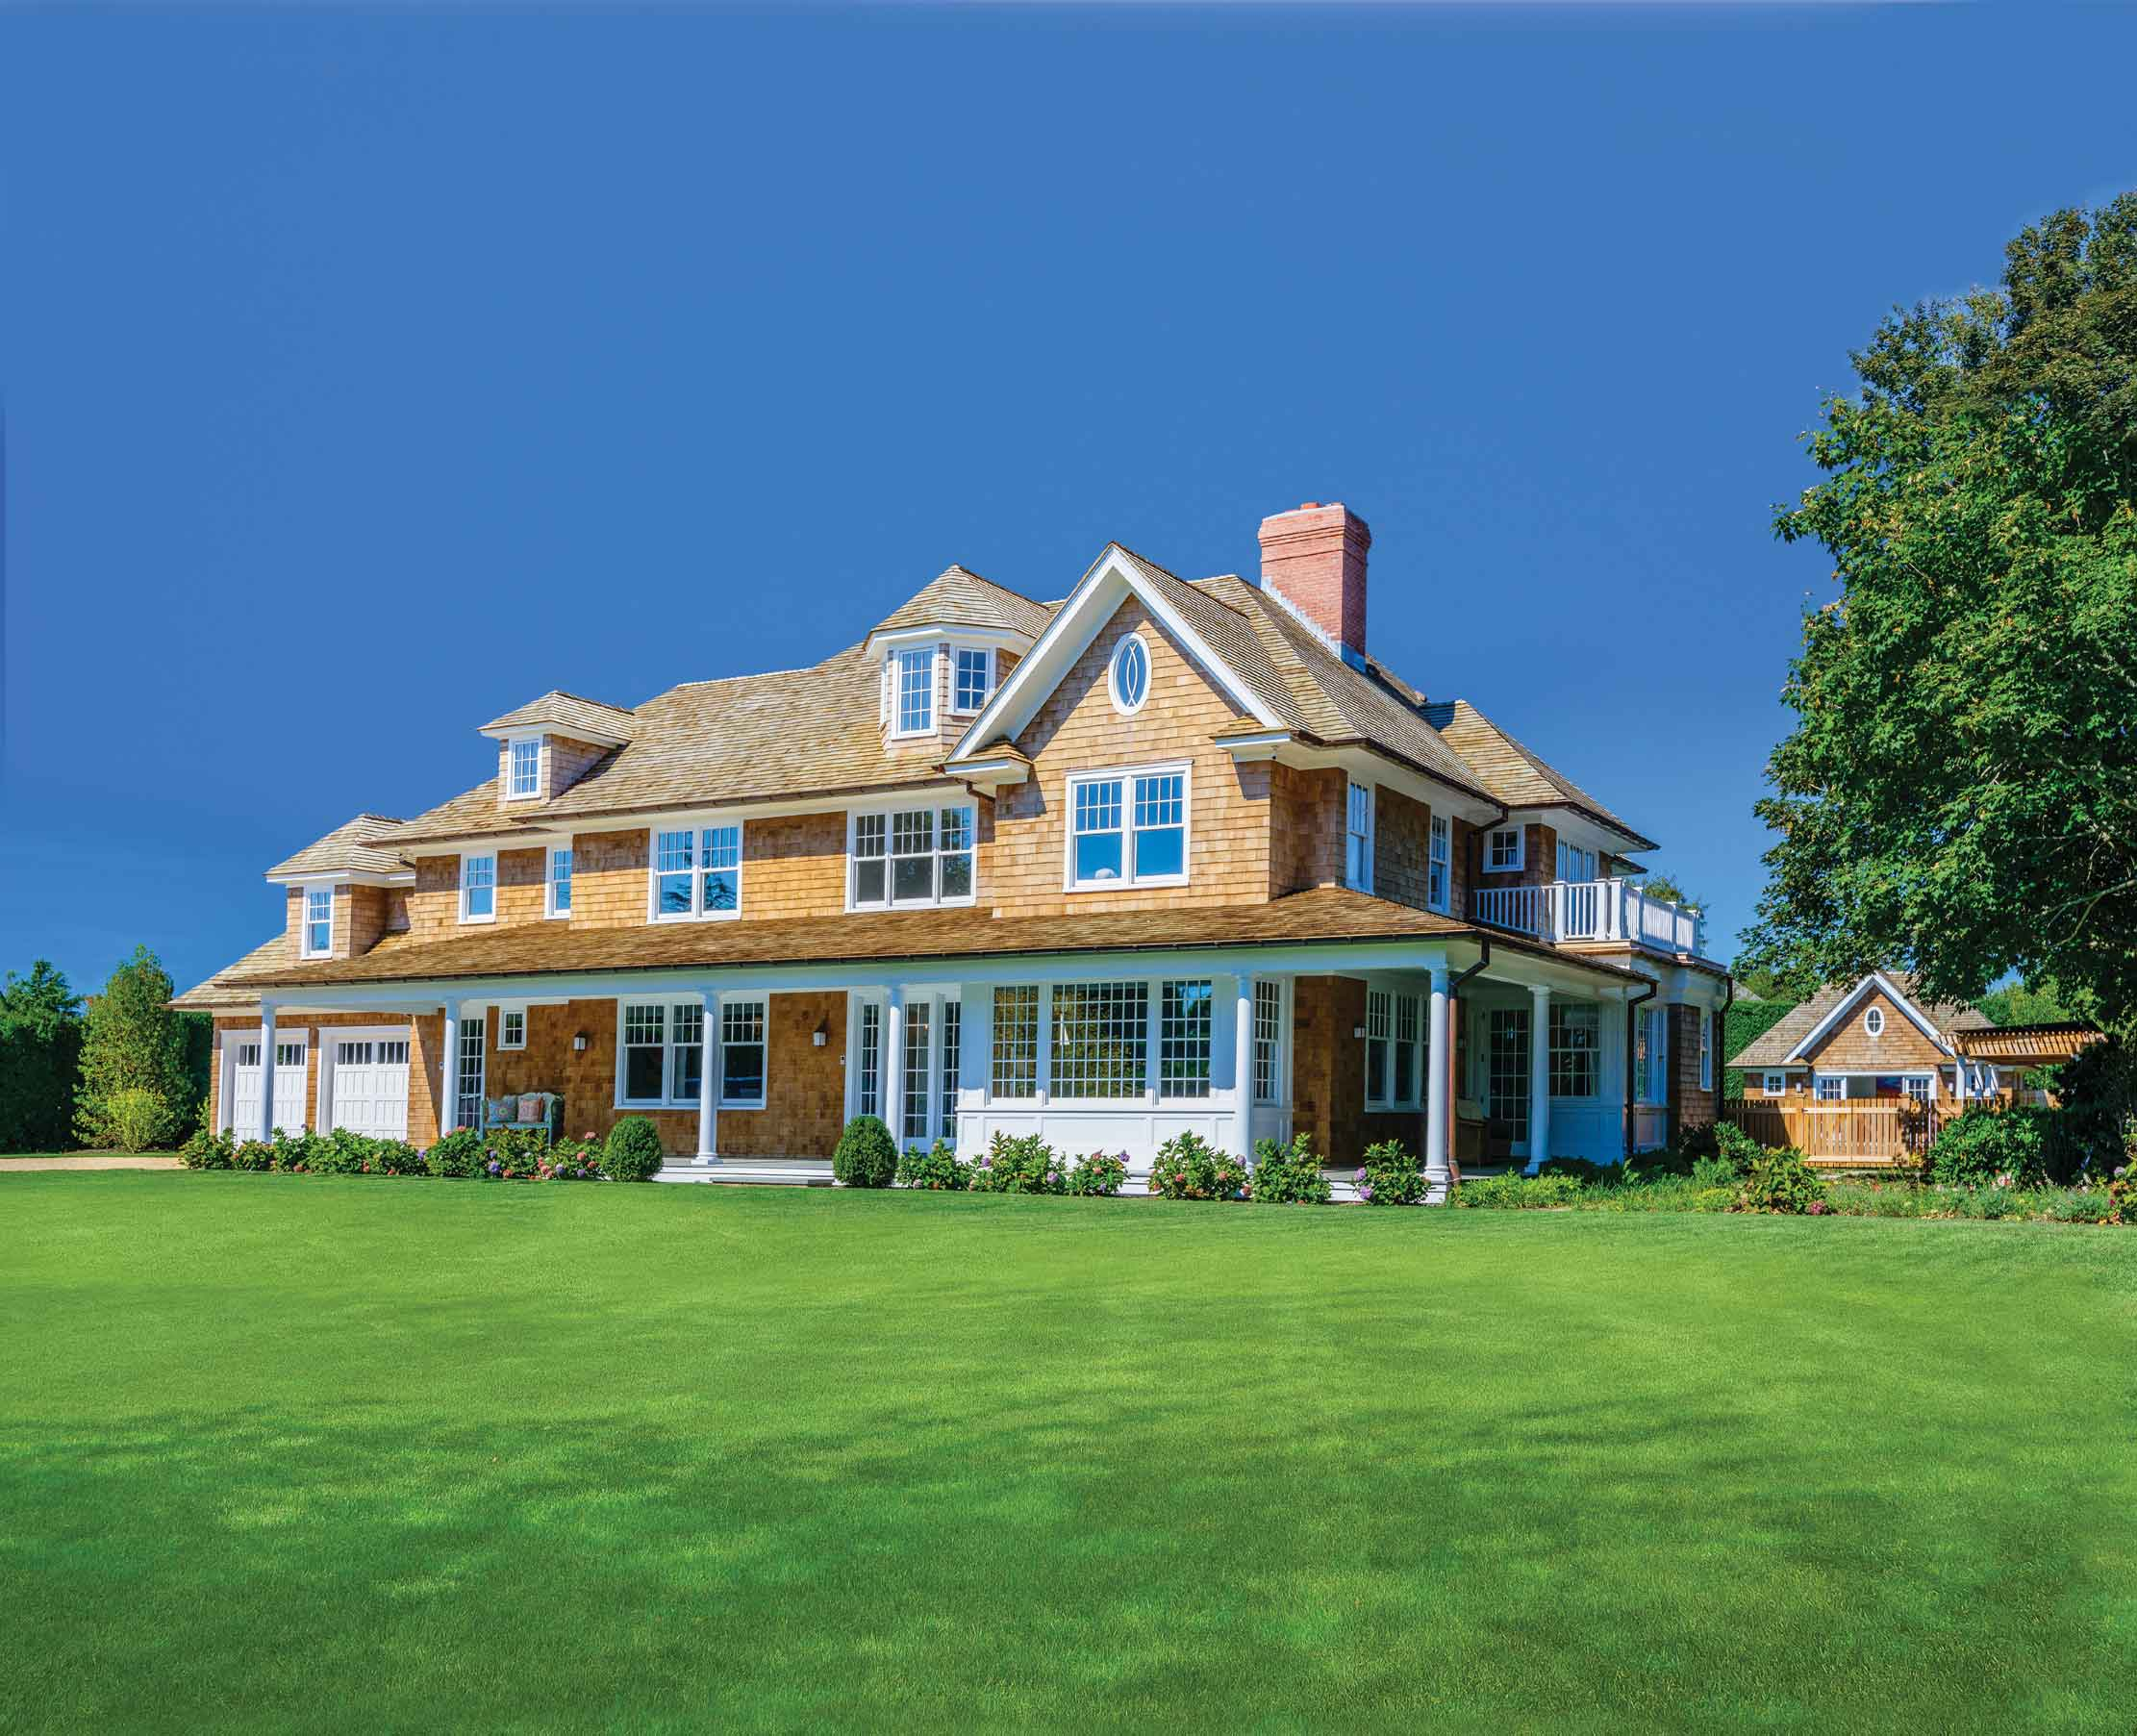 This LEED-certified home in the Hamptons hamlet of Water Mill combines the traditional Shingle-style architecture of the East End of Long Island with the latest in green amenities.